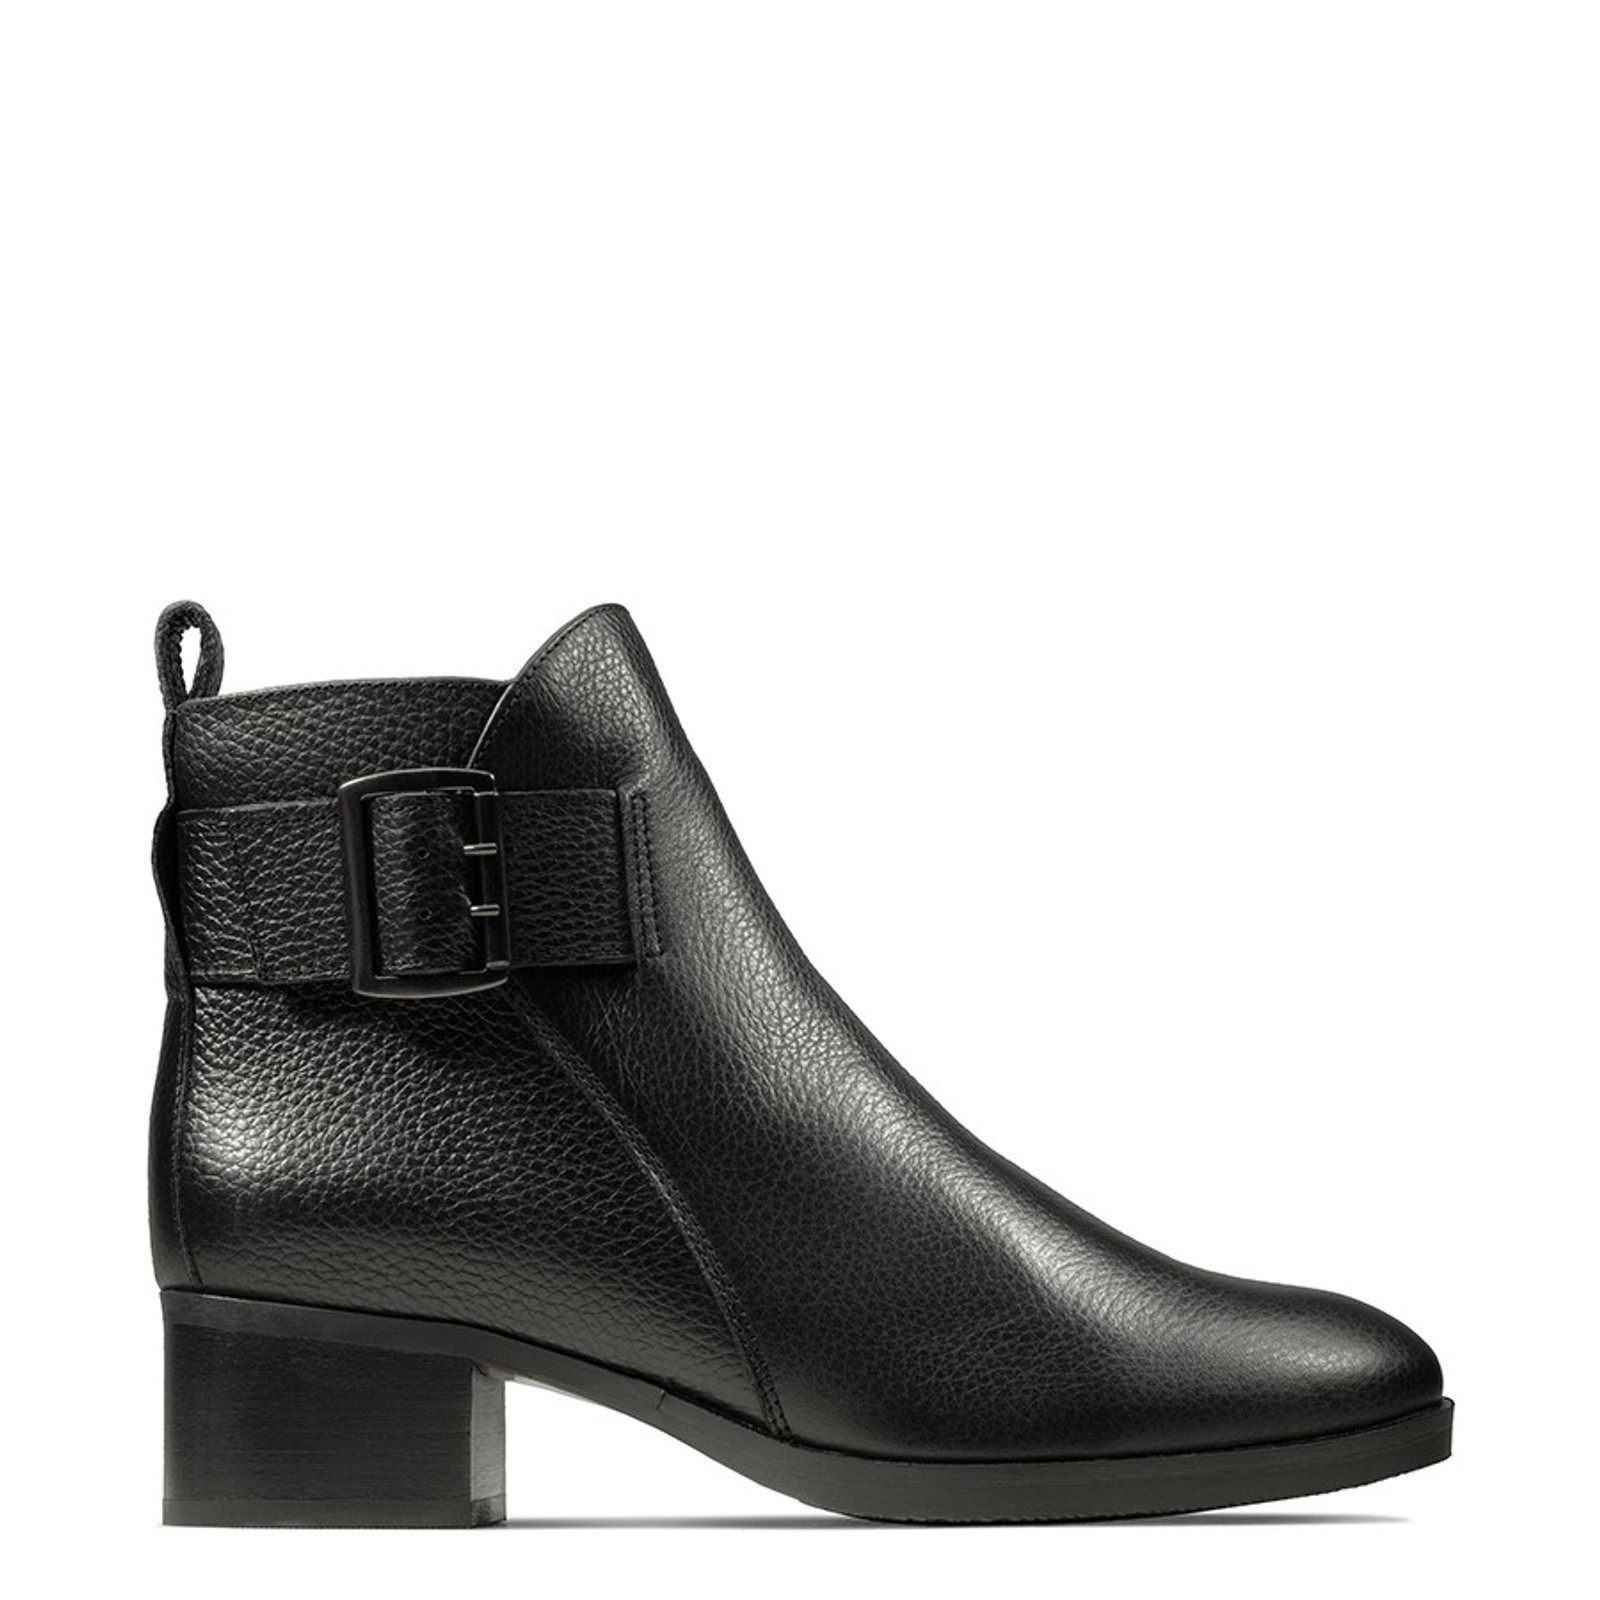 Ladies Clarks Ankle Boots /'/'Mila Charm/'/'